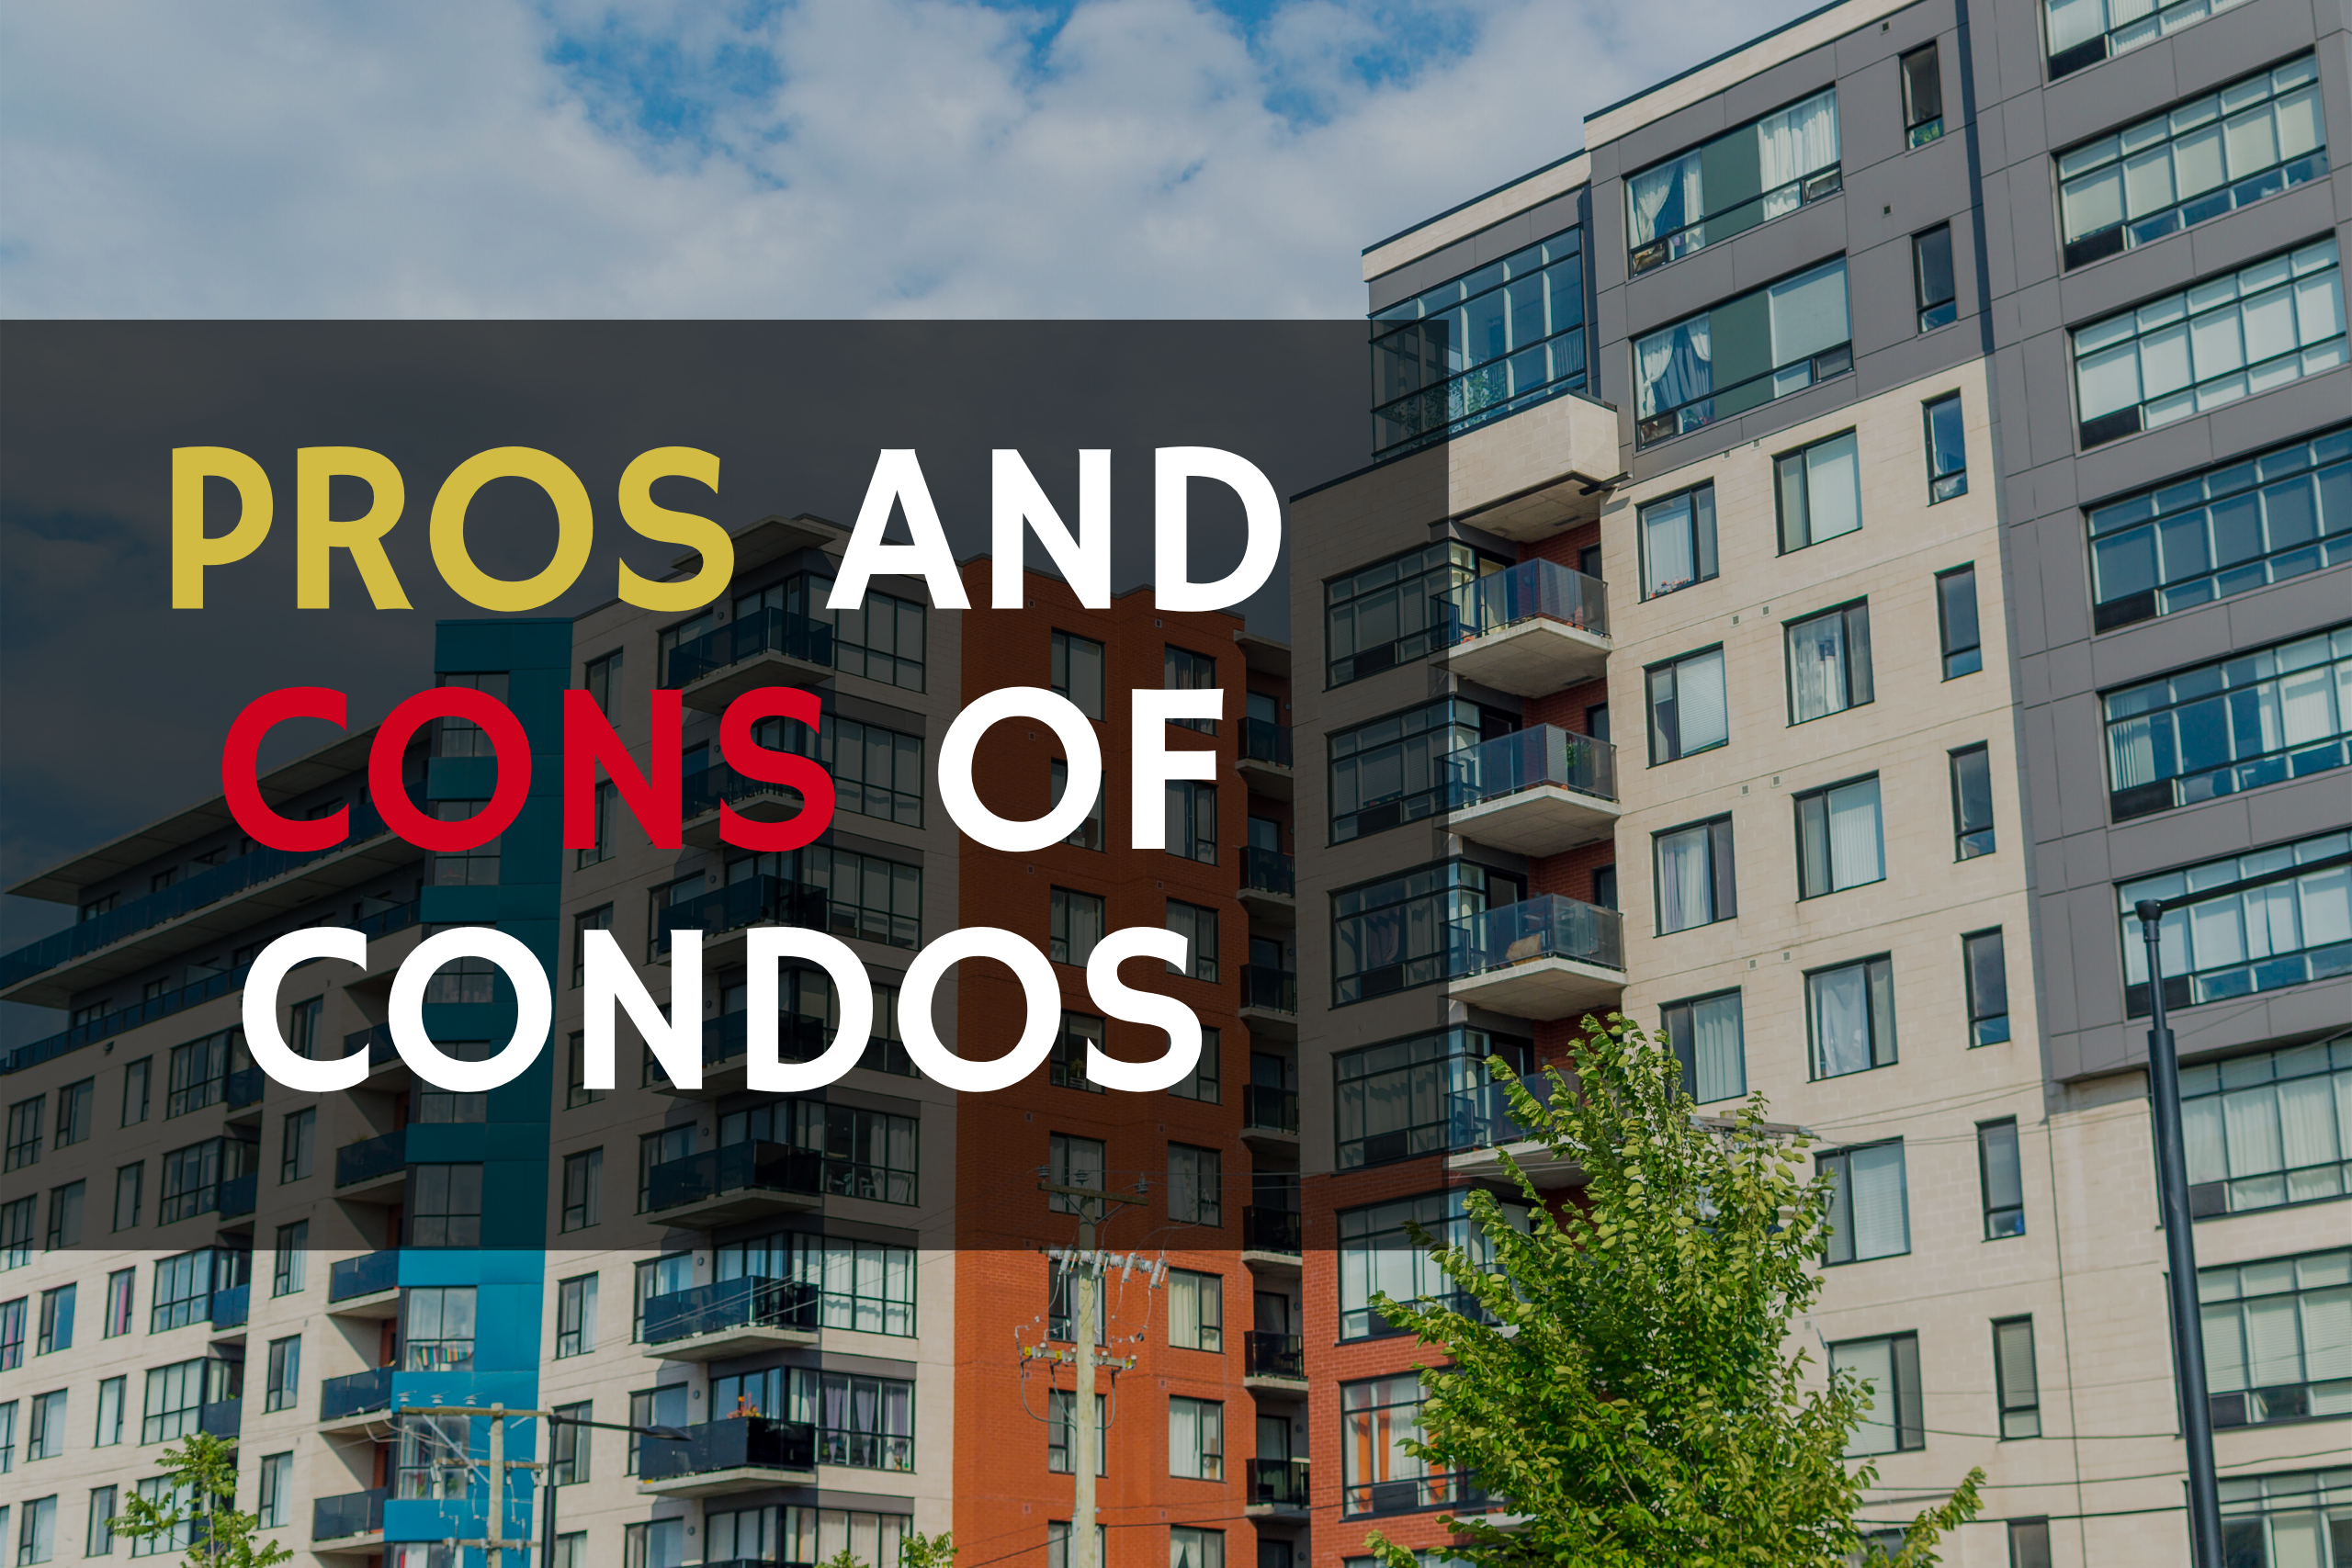 Pros and Cons of Condos